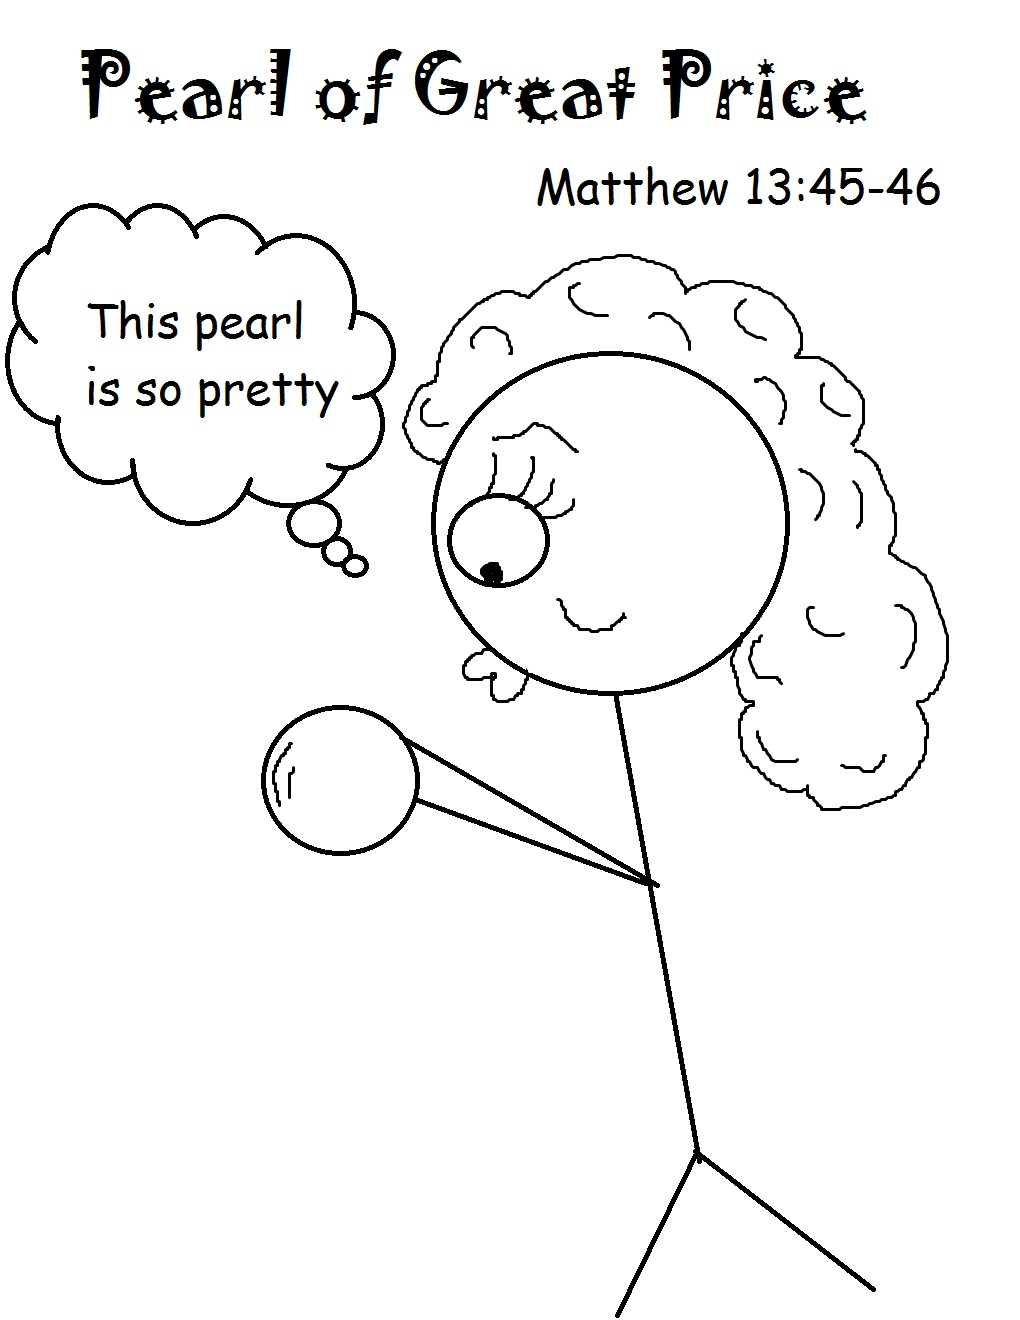 The Pearl Of Great Price Sunday School lesson.